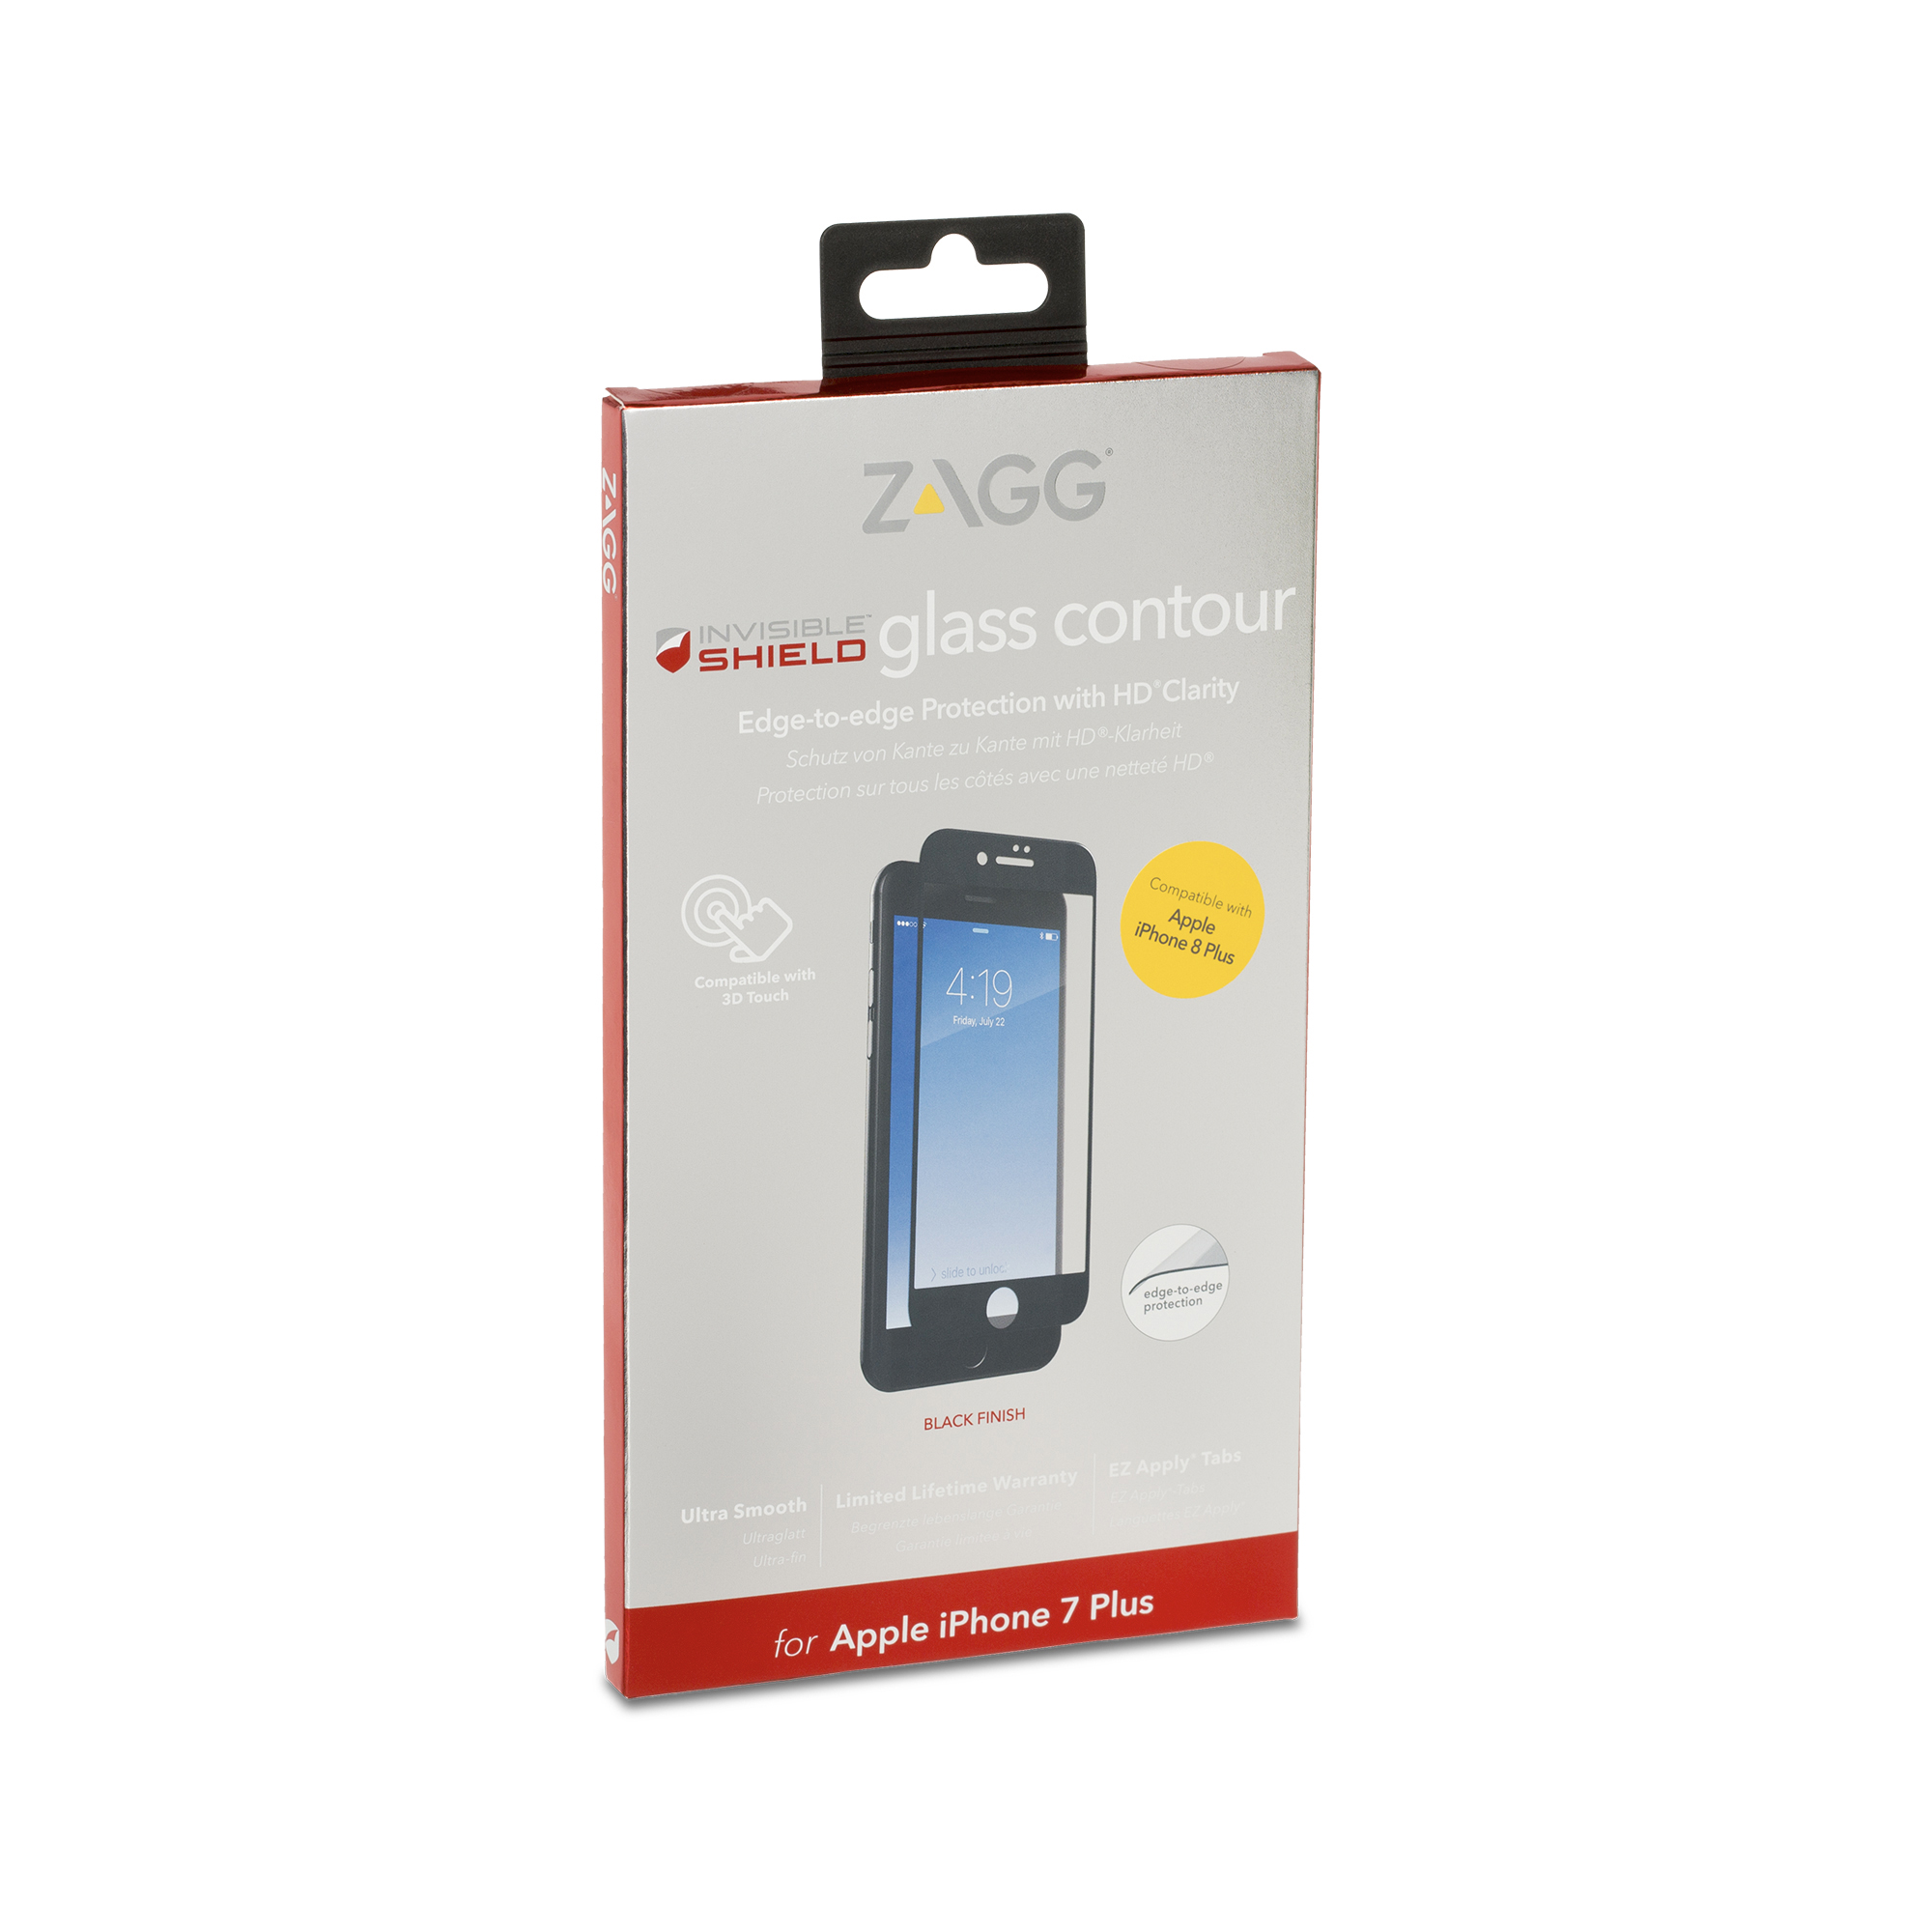 sports shoes 38068 d905b ZAGG InvisibleShield Glass Contour iPhone 8 Plus Screen Protector ...